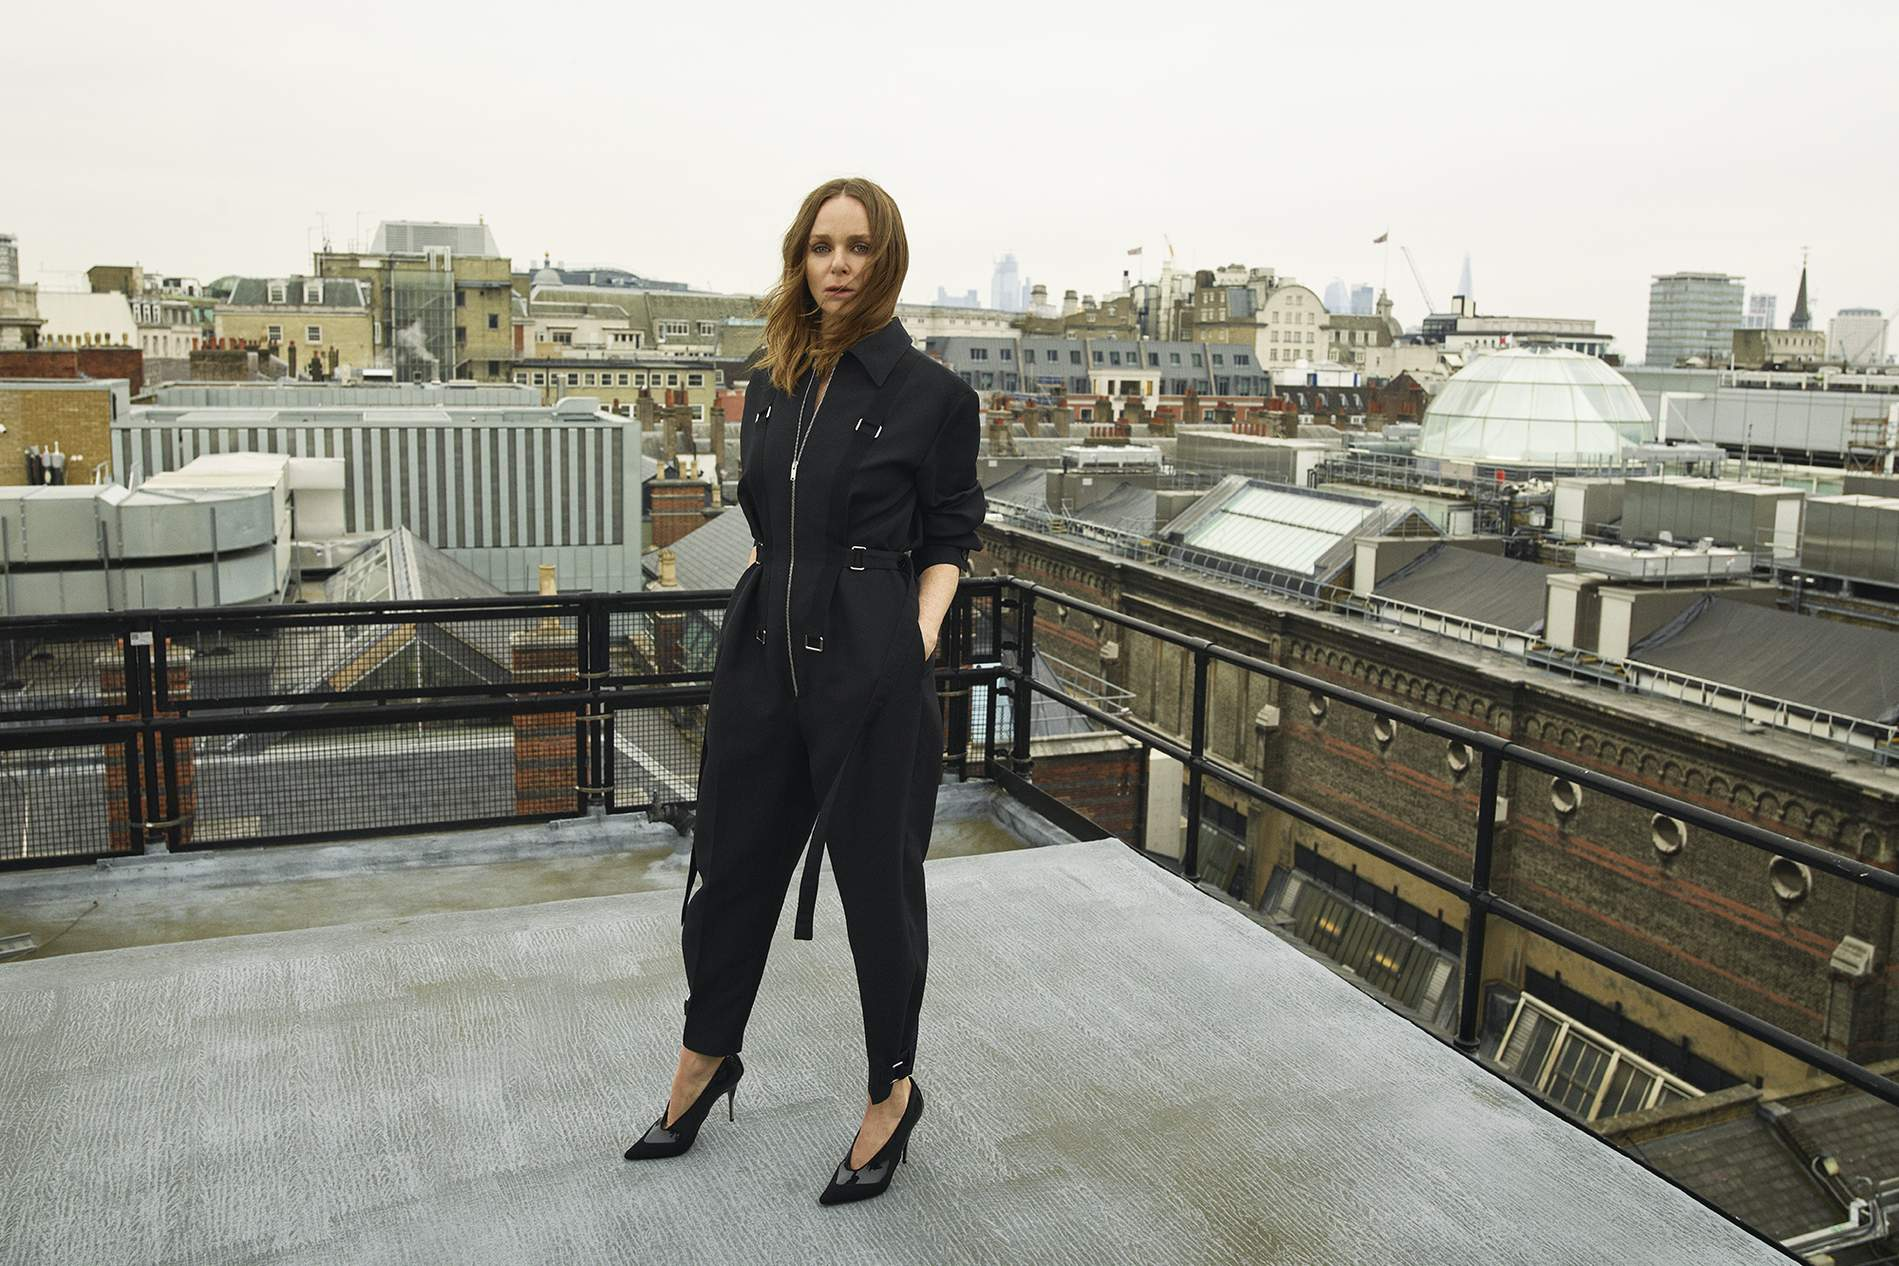 Stella MCCartney wears a jumpsuit from her own collection. Image by Matthew Sprout.